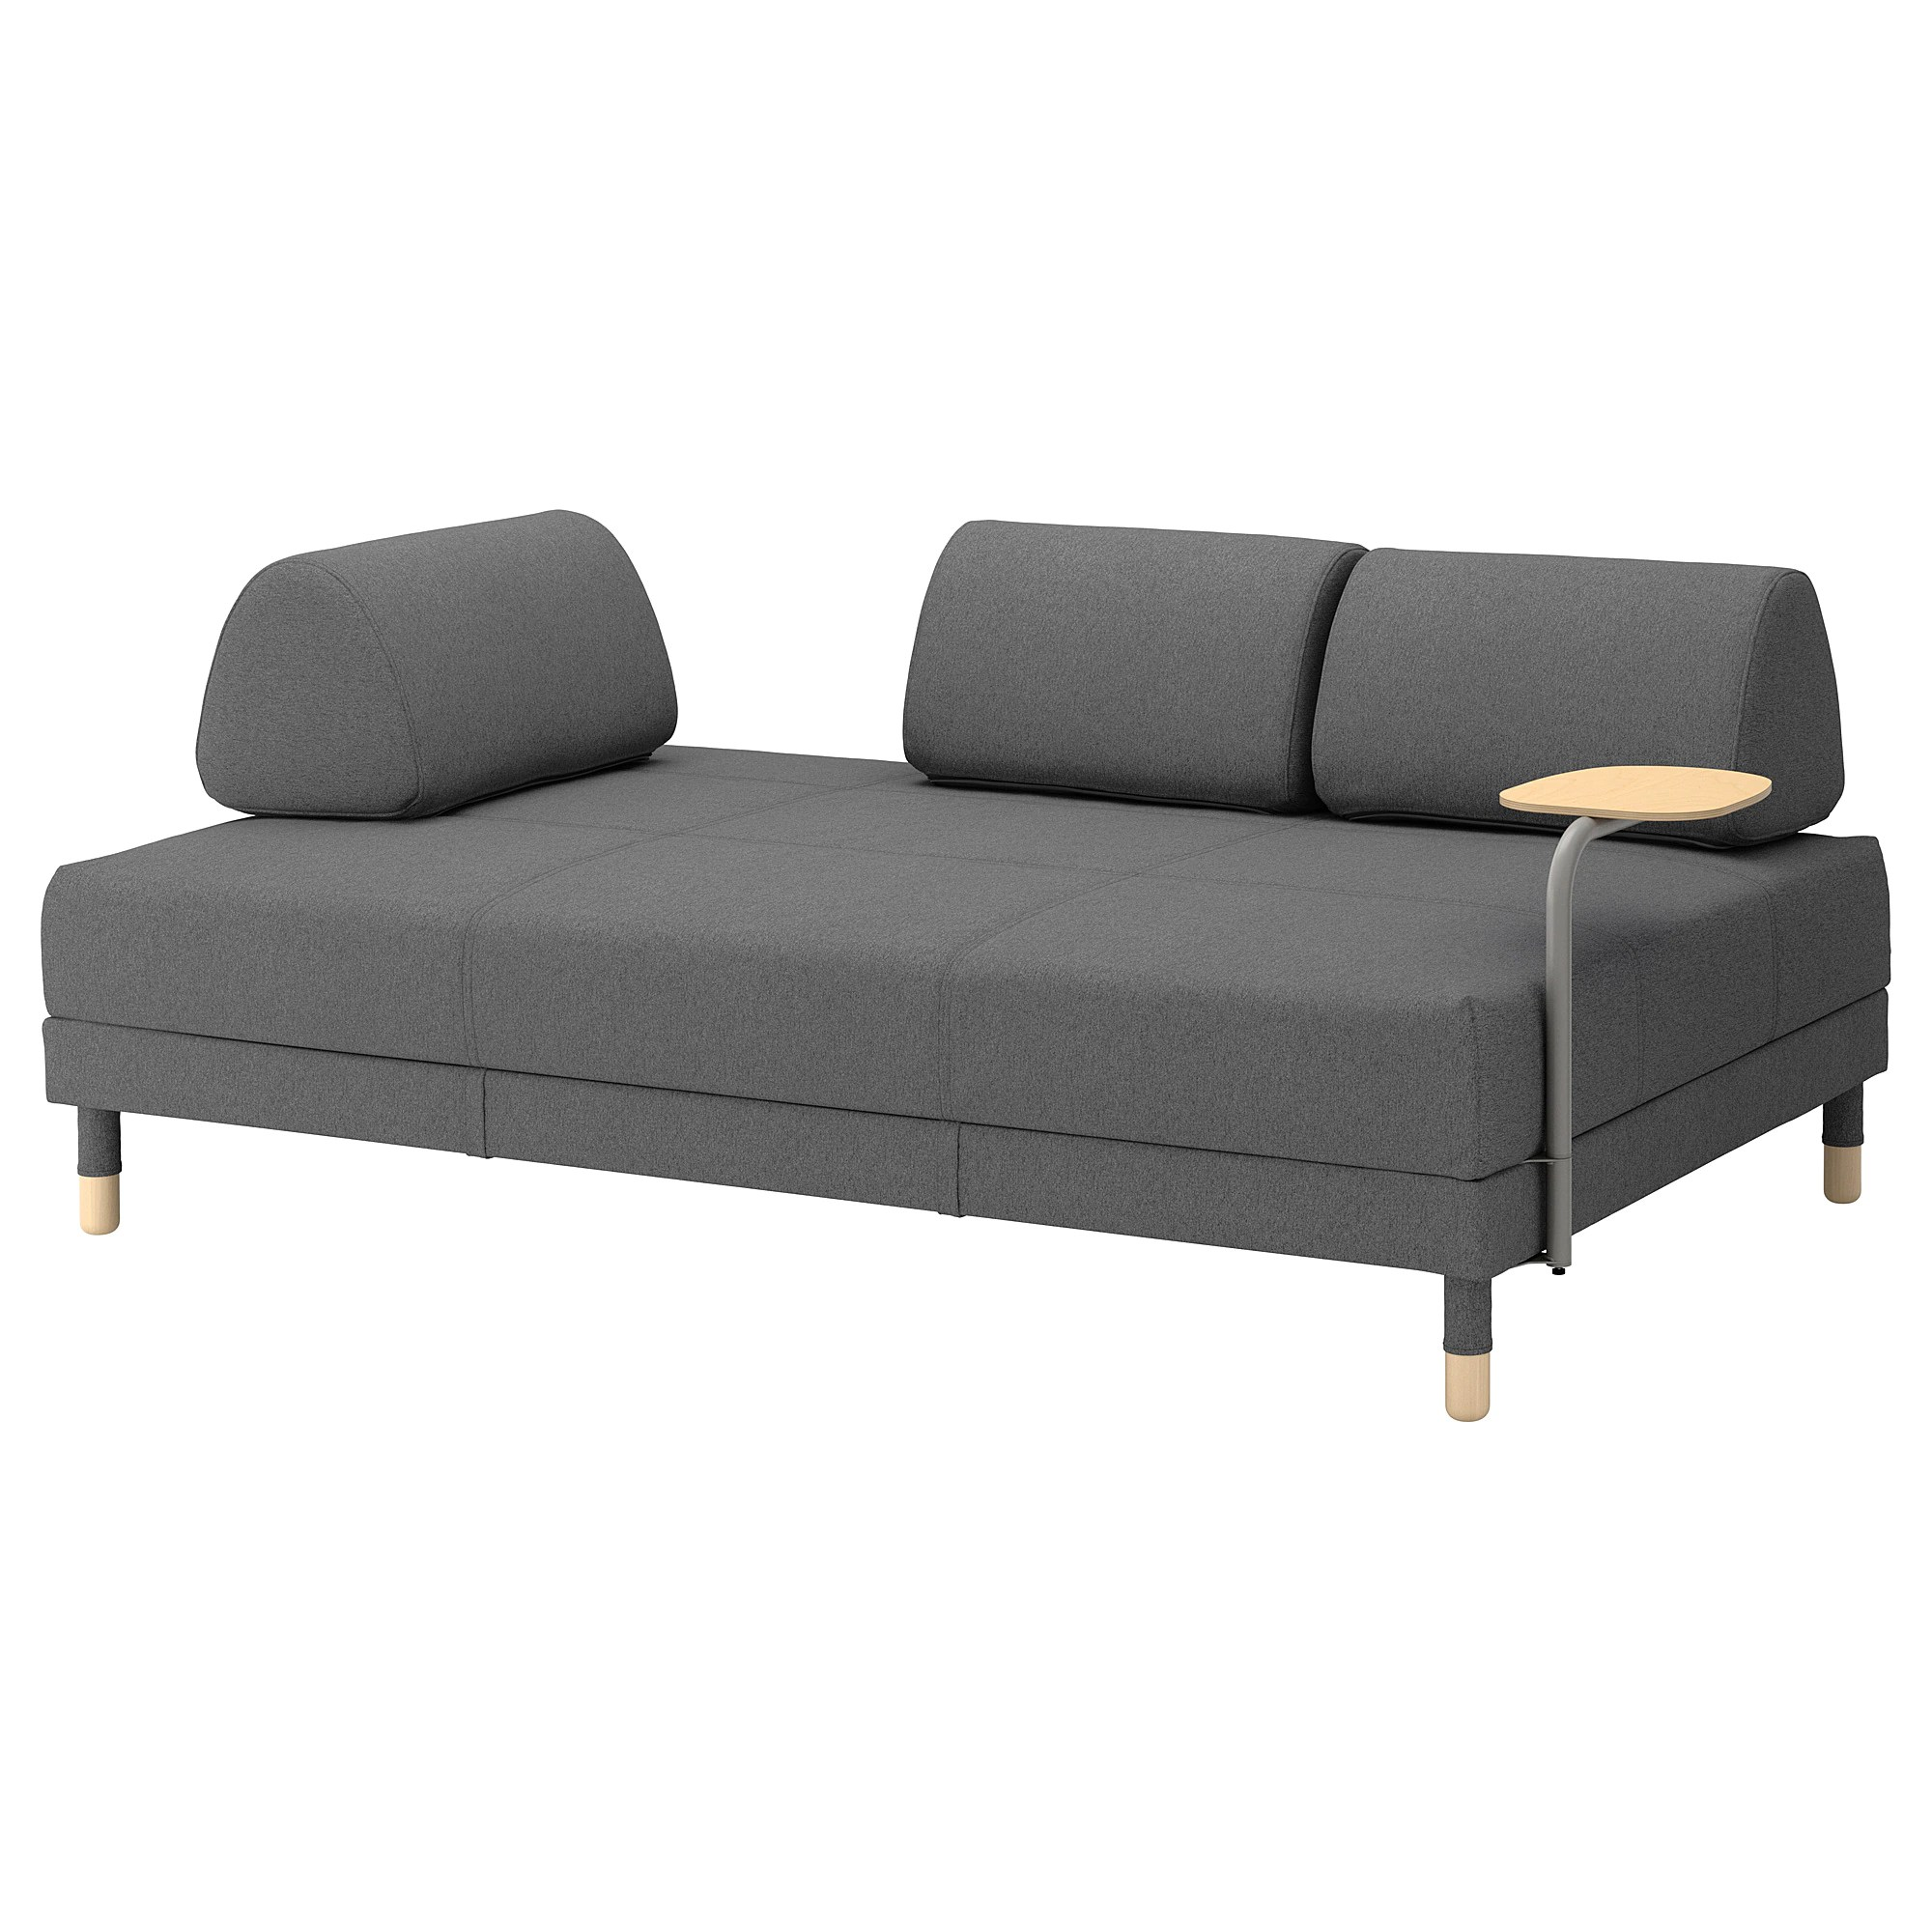 Bettsofa Outlet Flottebo Sleeper Sofa With Side Table Lysed Green